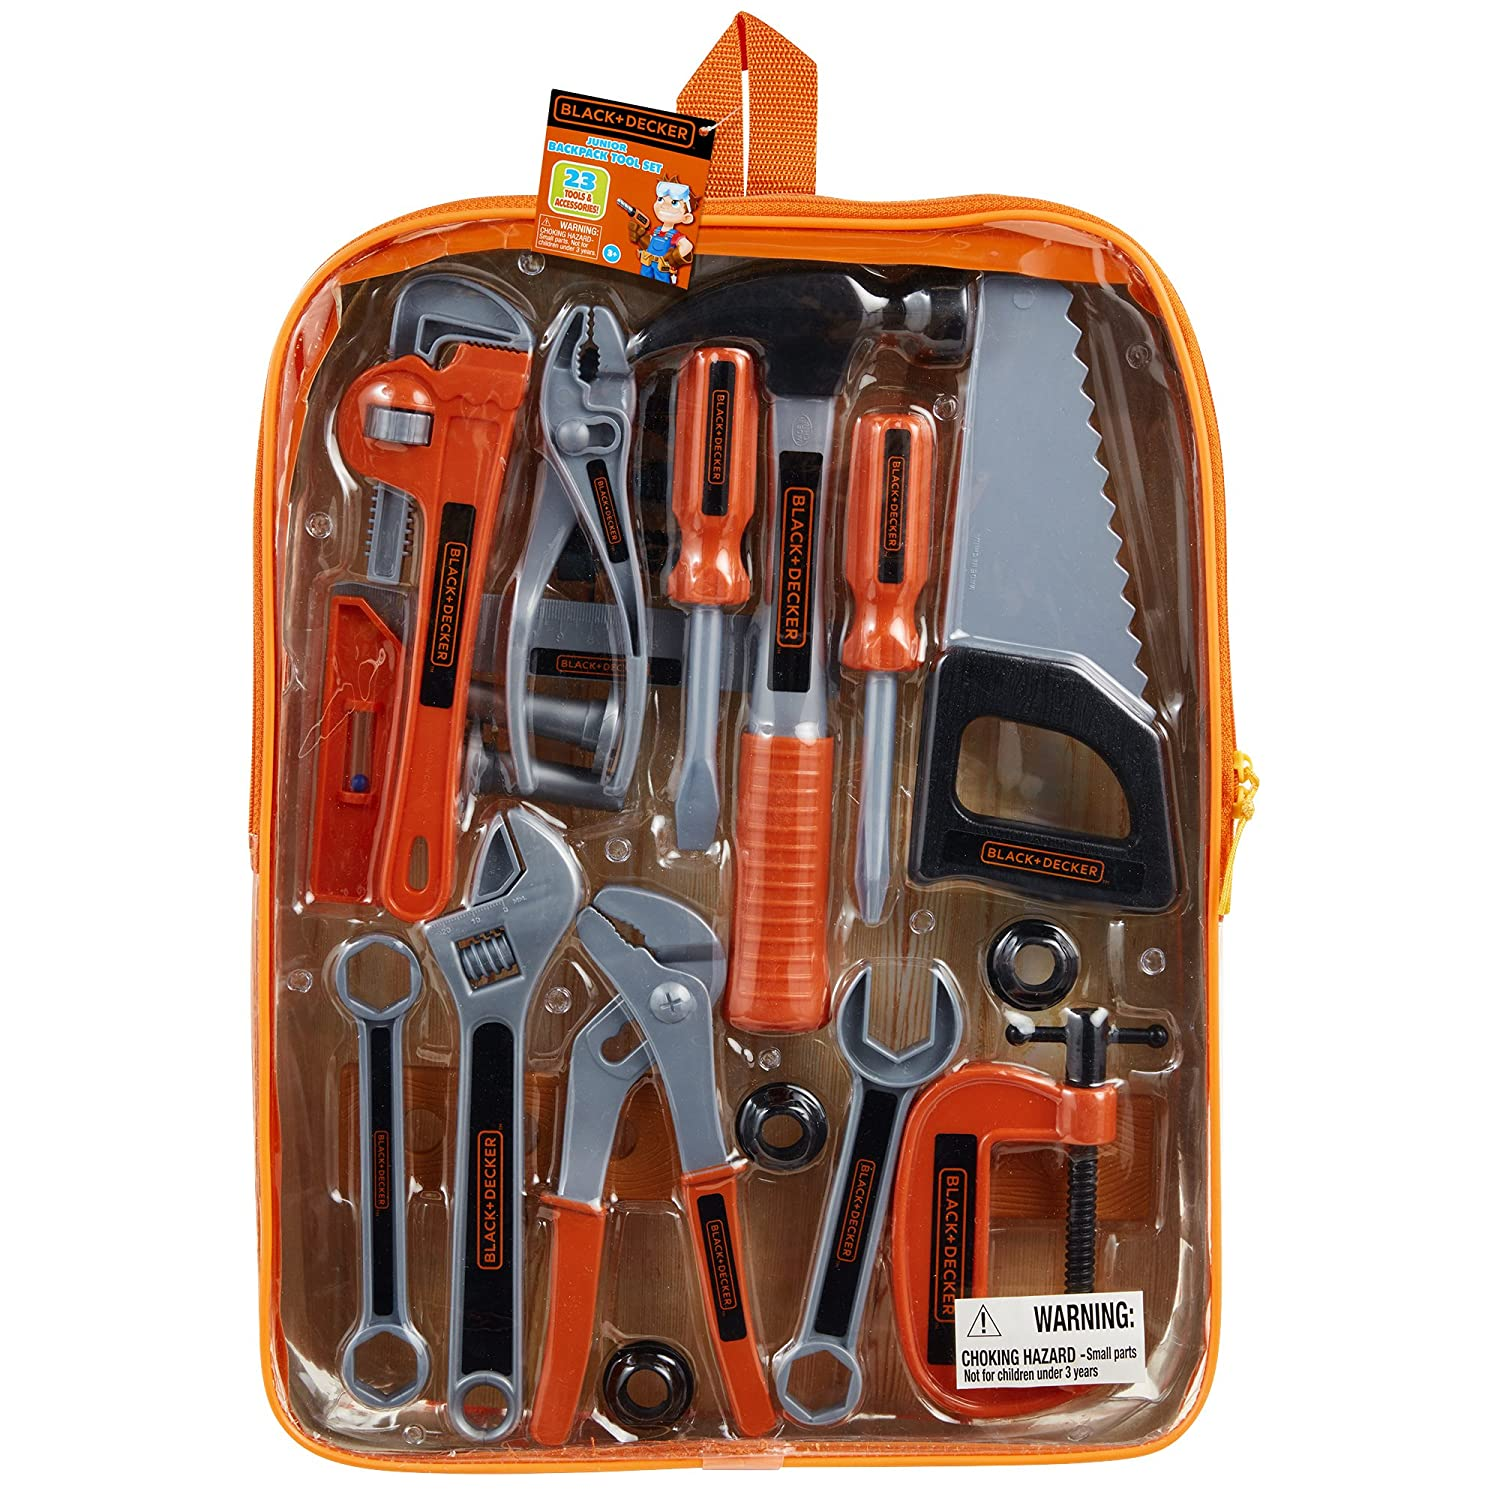 Black & Decker Jr. 23 Piece Backpack Set 91104